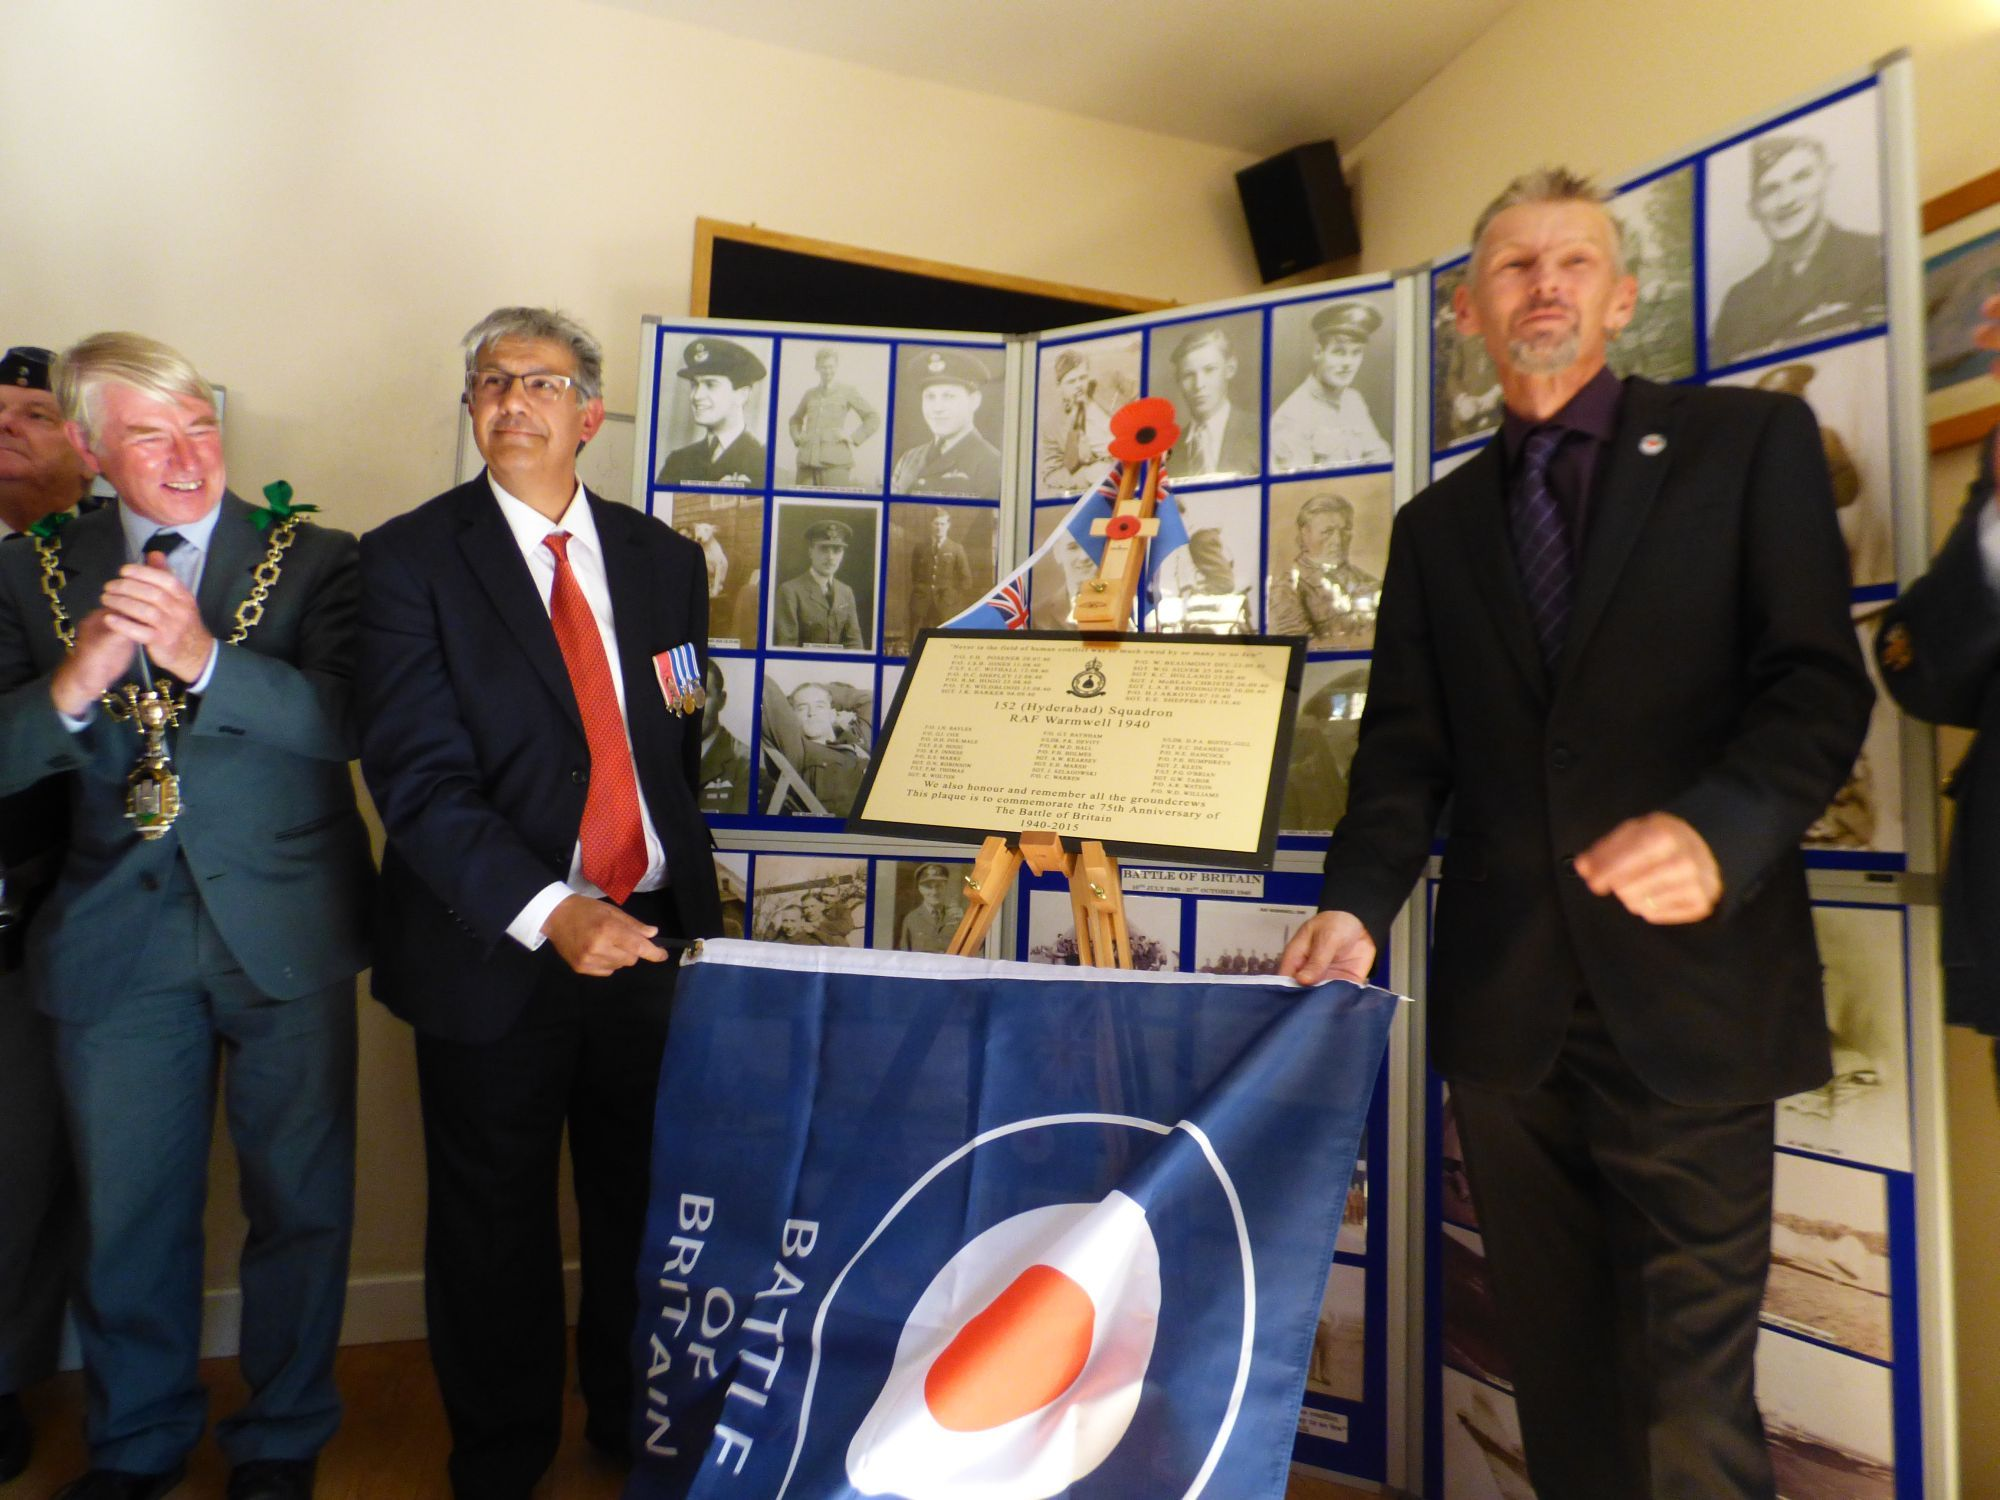 Memorial plaque to Dorset pilots who gave their lives in Battle of Britain unveiled